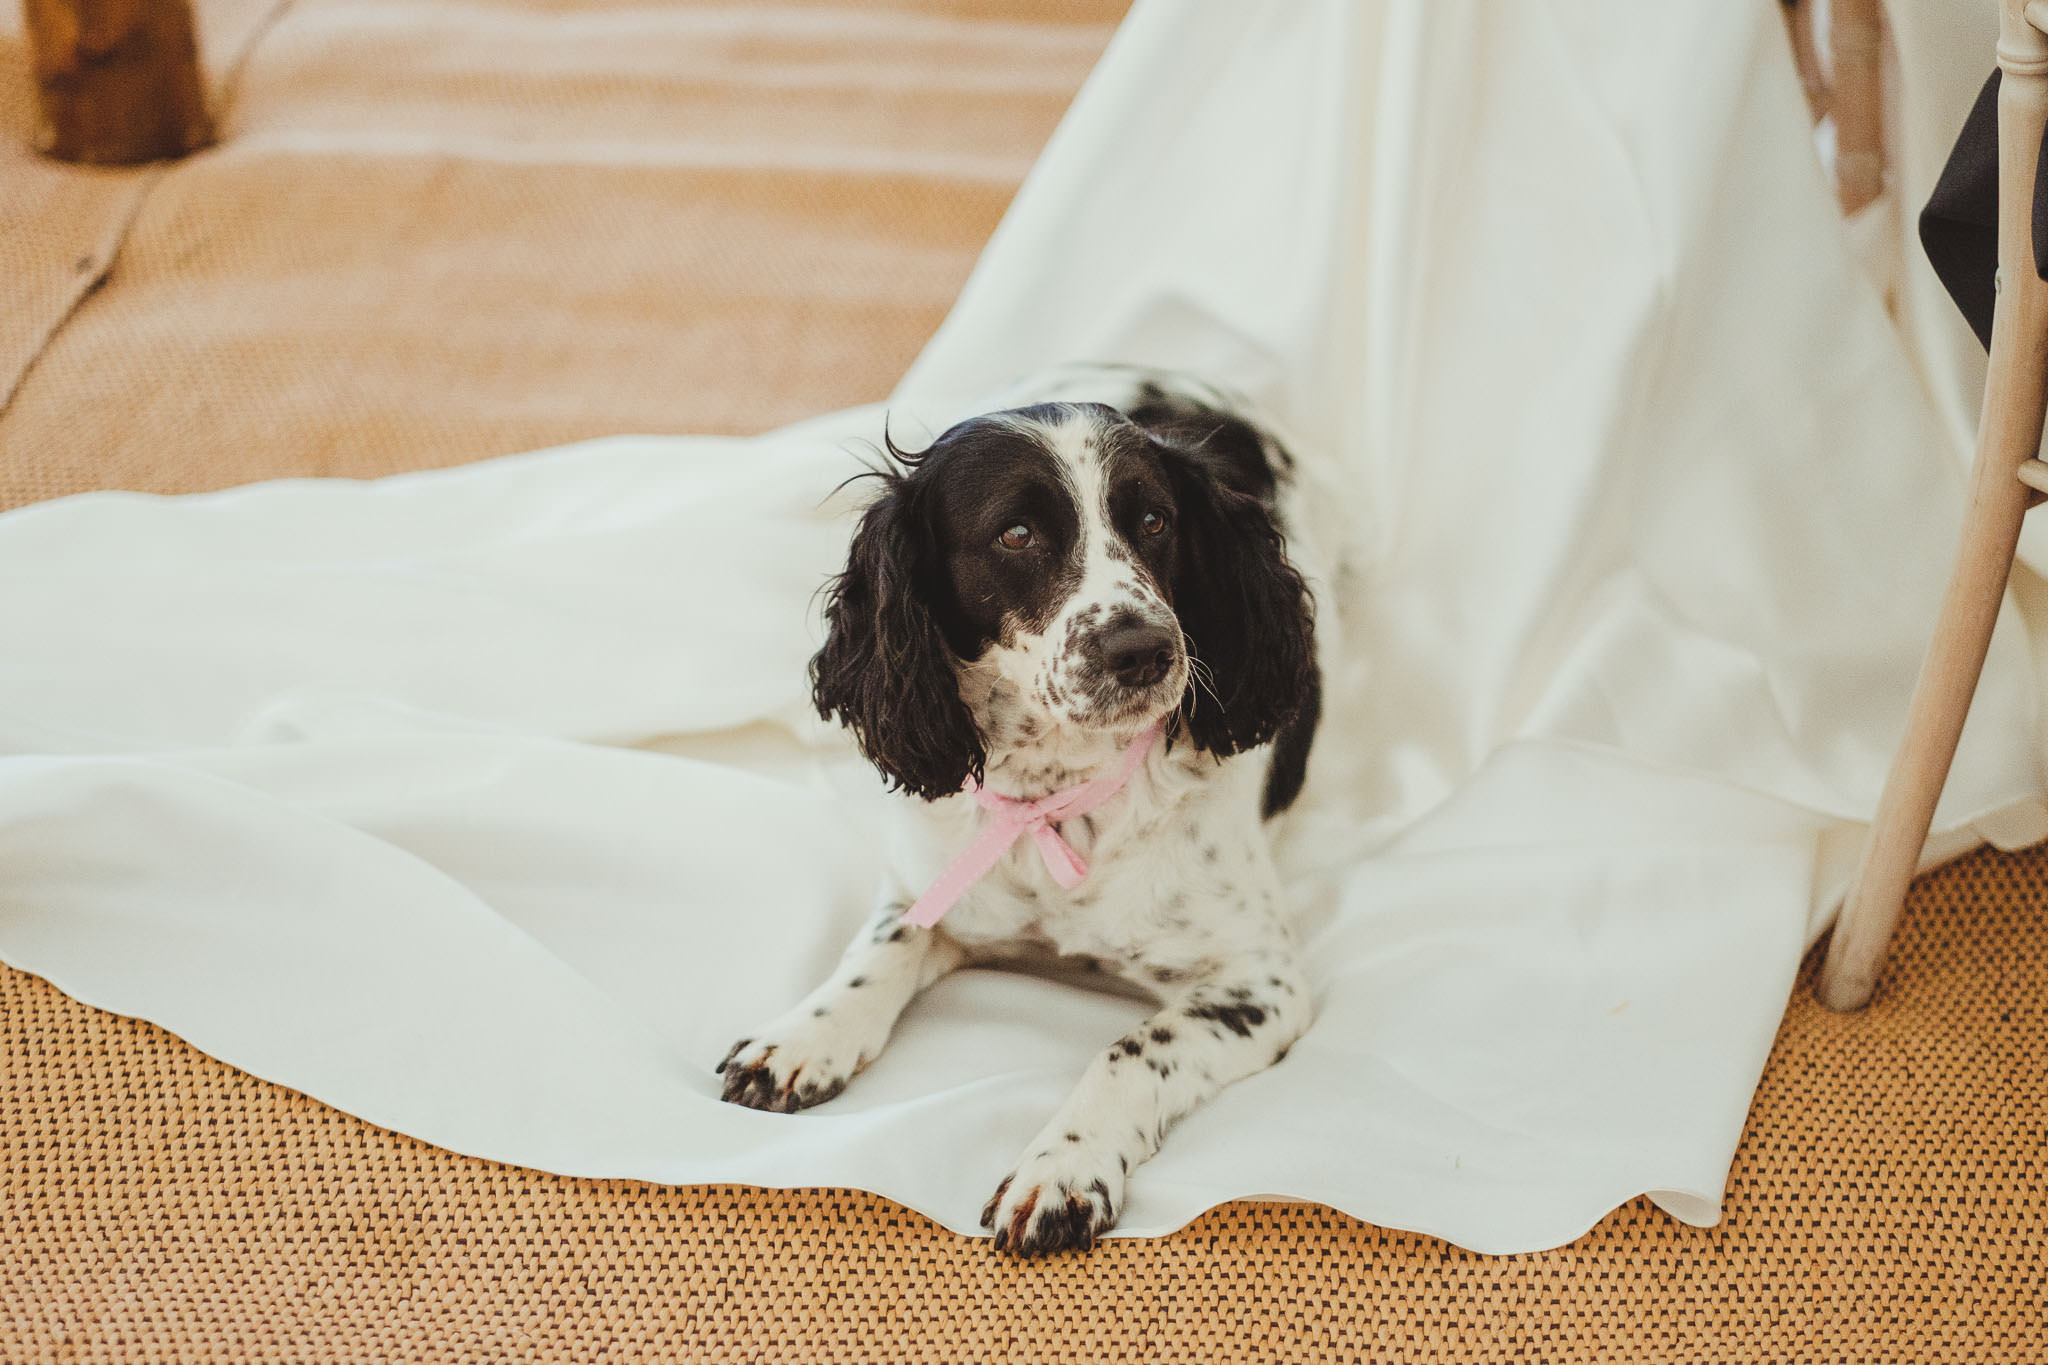 The bride's dog sitting on her wedding dress during the wedding speeches